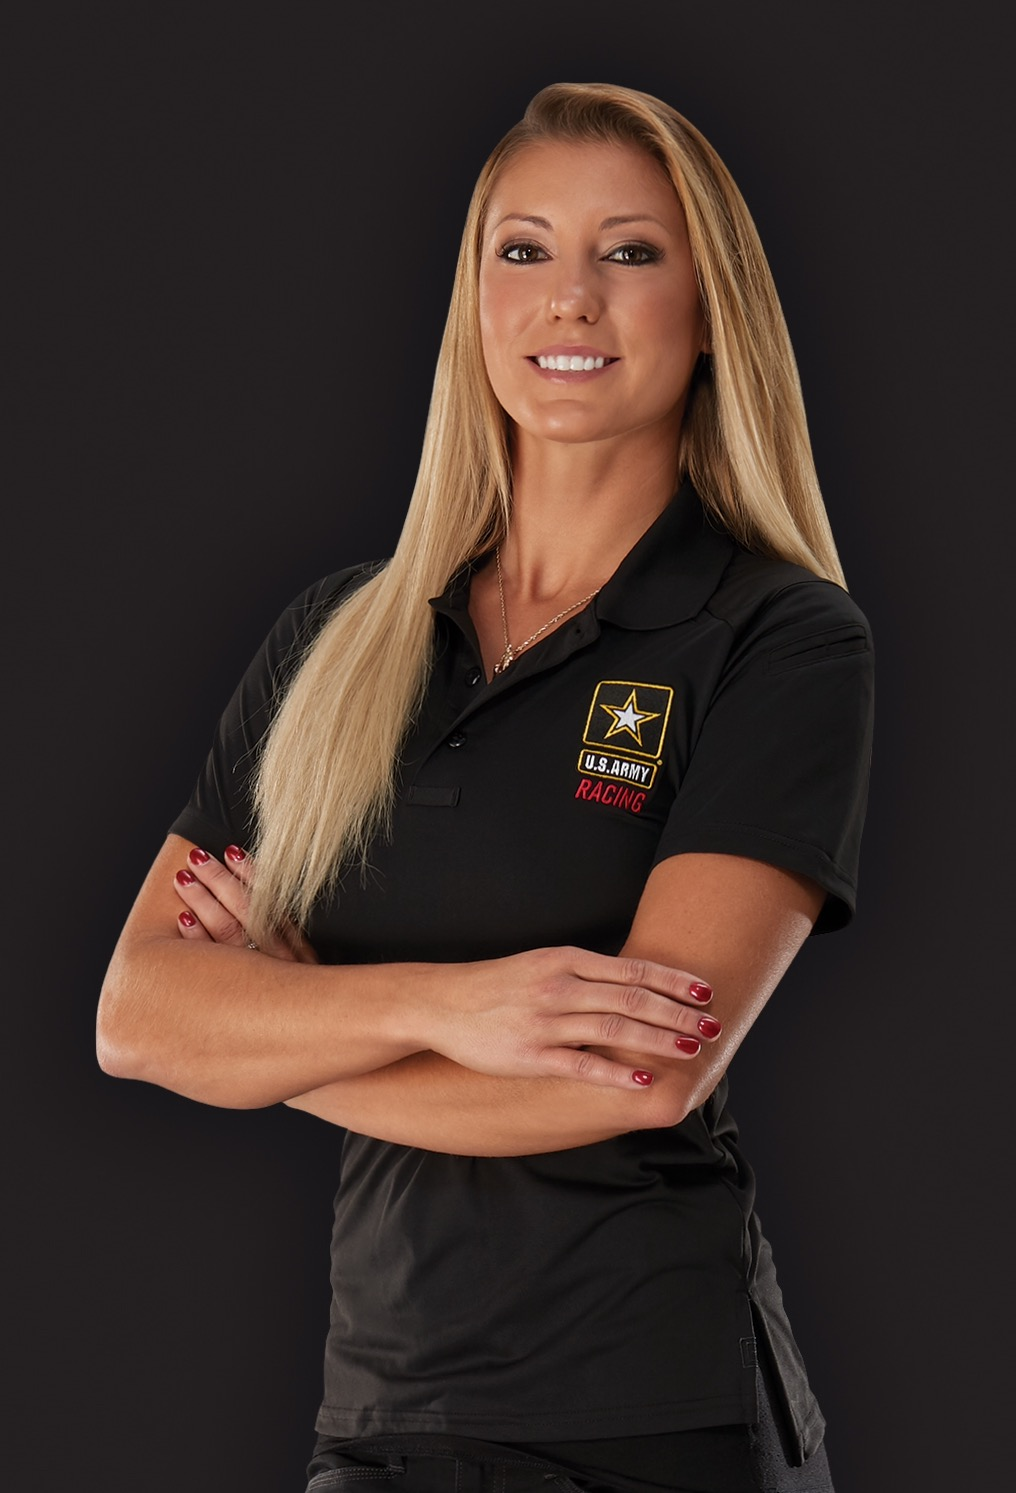 Pritchett Joins 2018 U S  Army Racing NHRA Top Fuel Driver